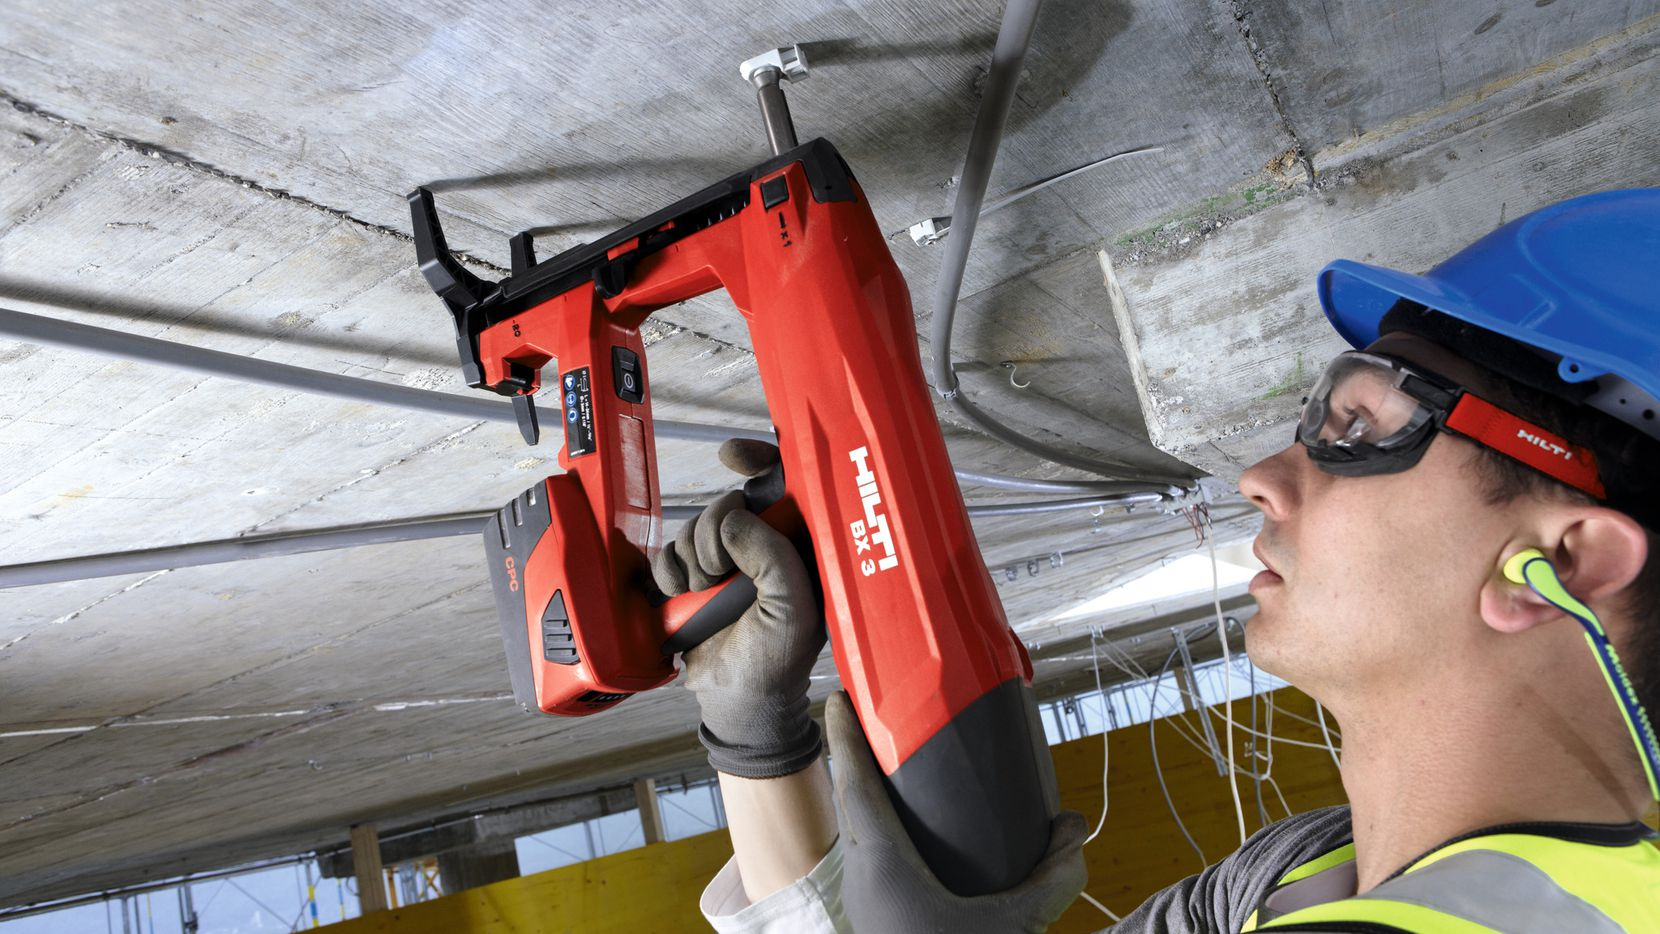 Hilti, which makes products for the construction and energy industries, moved its North American headquarters to Plano in 2014.